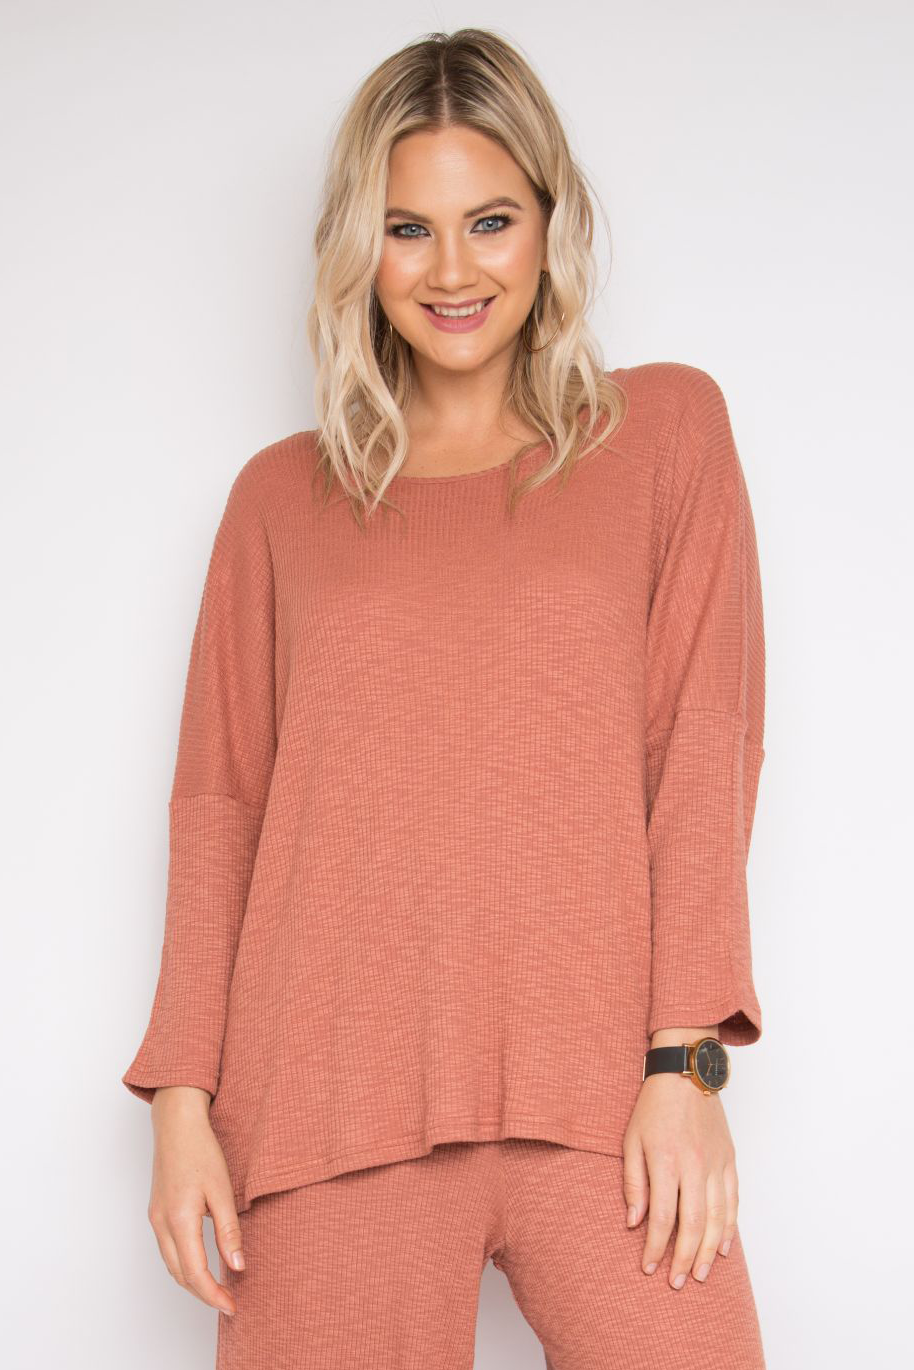 Long Sleeve A Nice Top in Rhubarb Knit